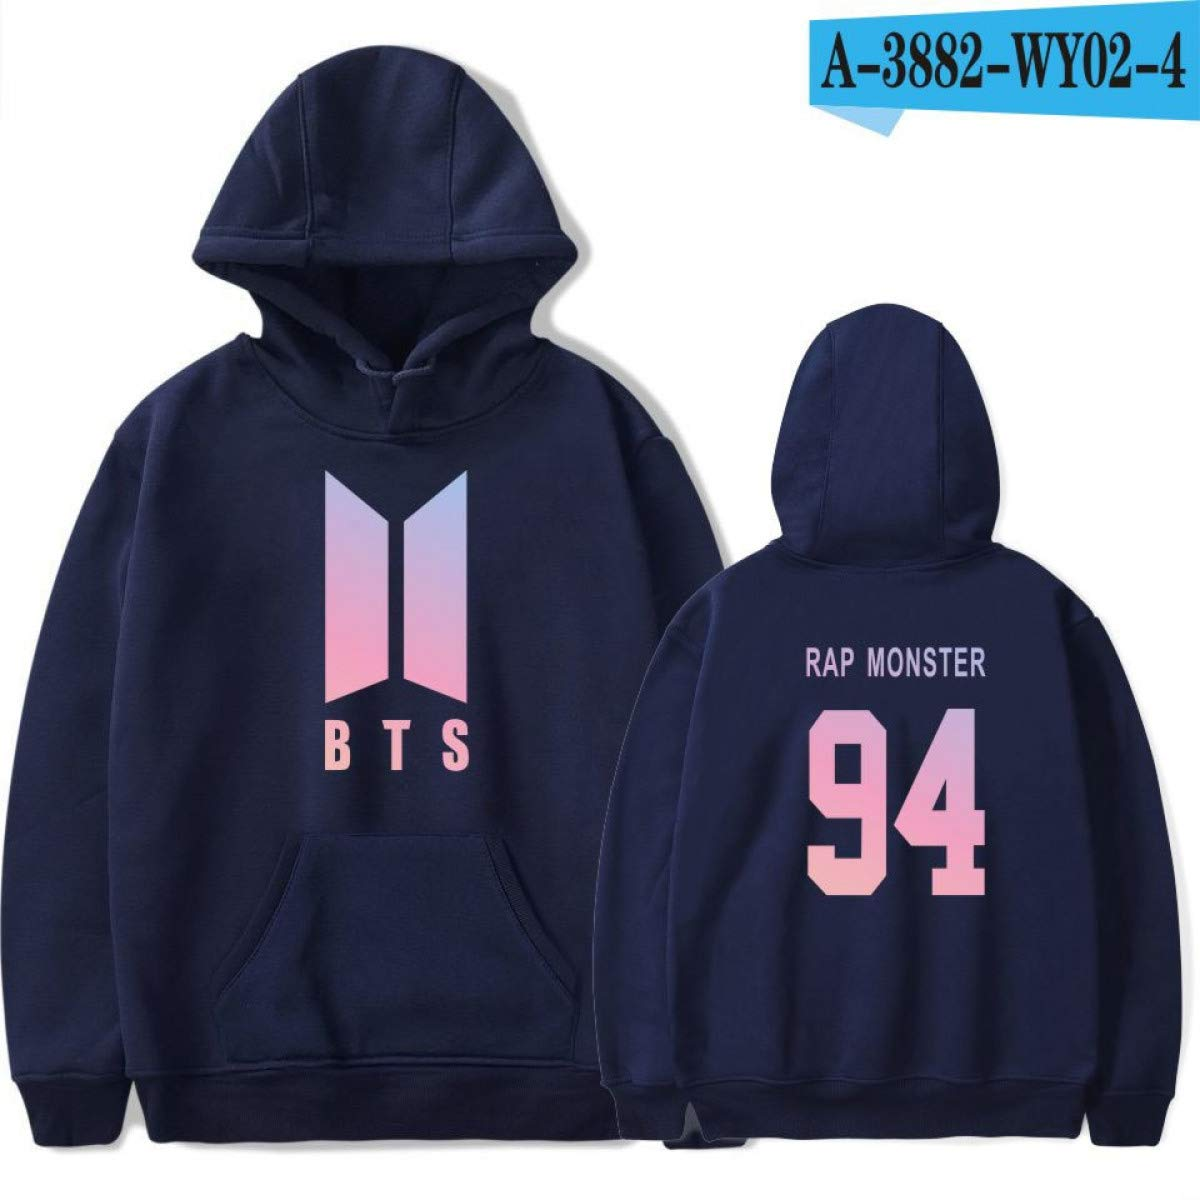 Amazon.com: Hoodies for Women Bangtan Boys Sweatshirt Women Hoodies Love Yourself Pullovers: Clothing